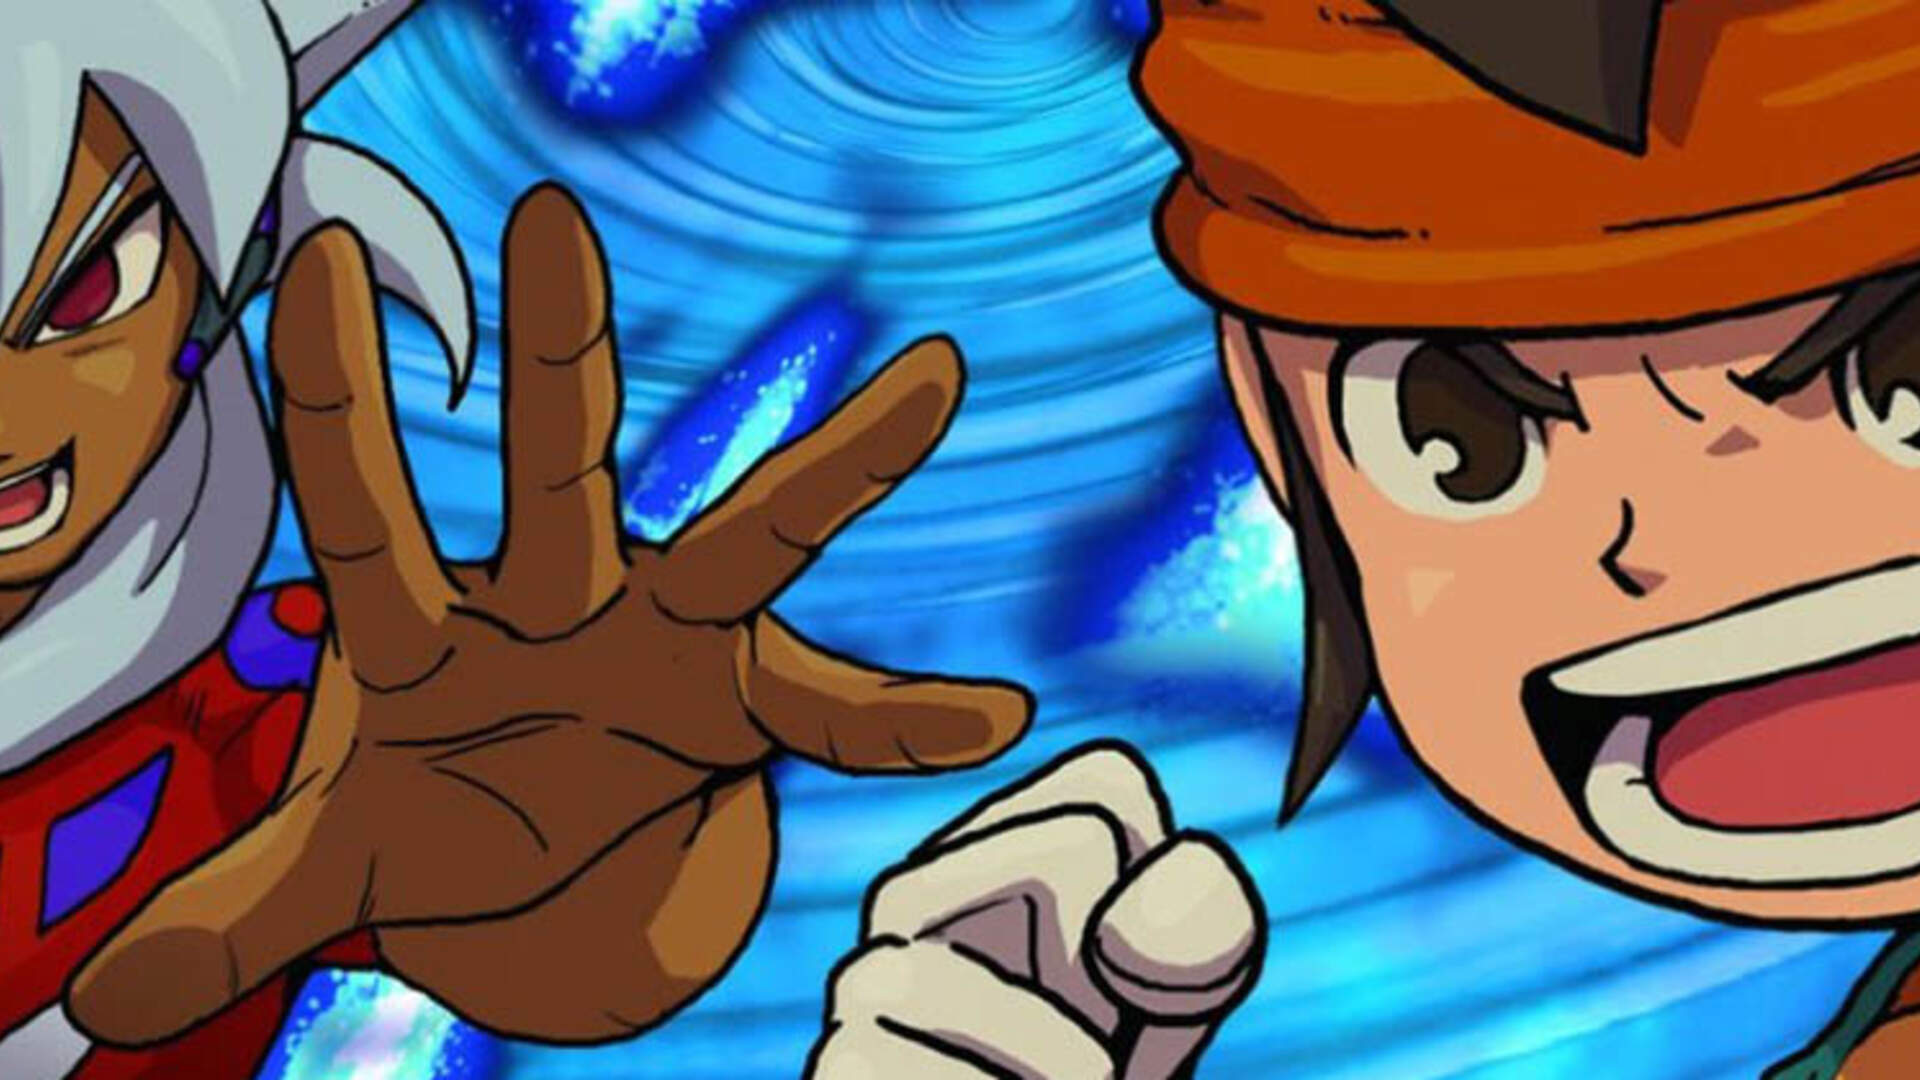 Inazuma Eleven 3DS Review: Dragon (Foot) Ball Z